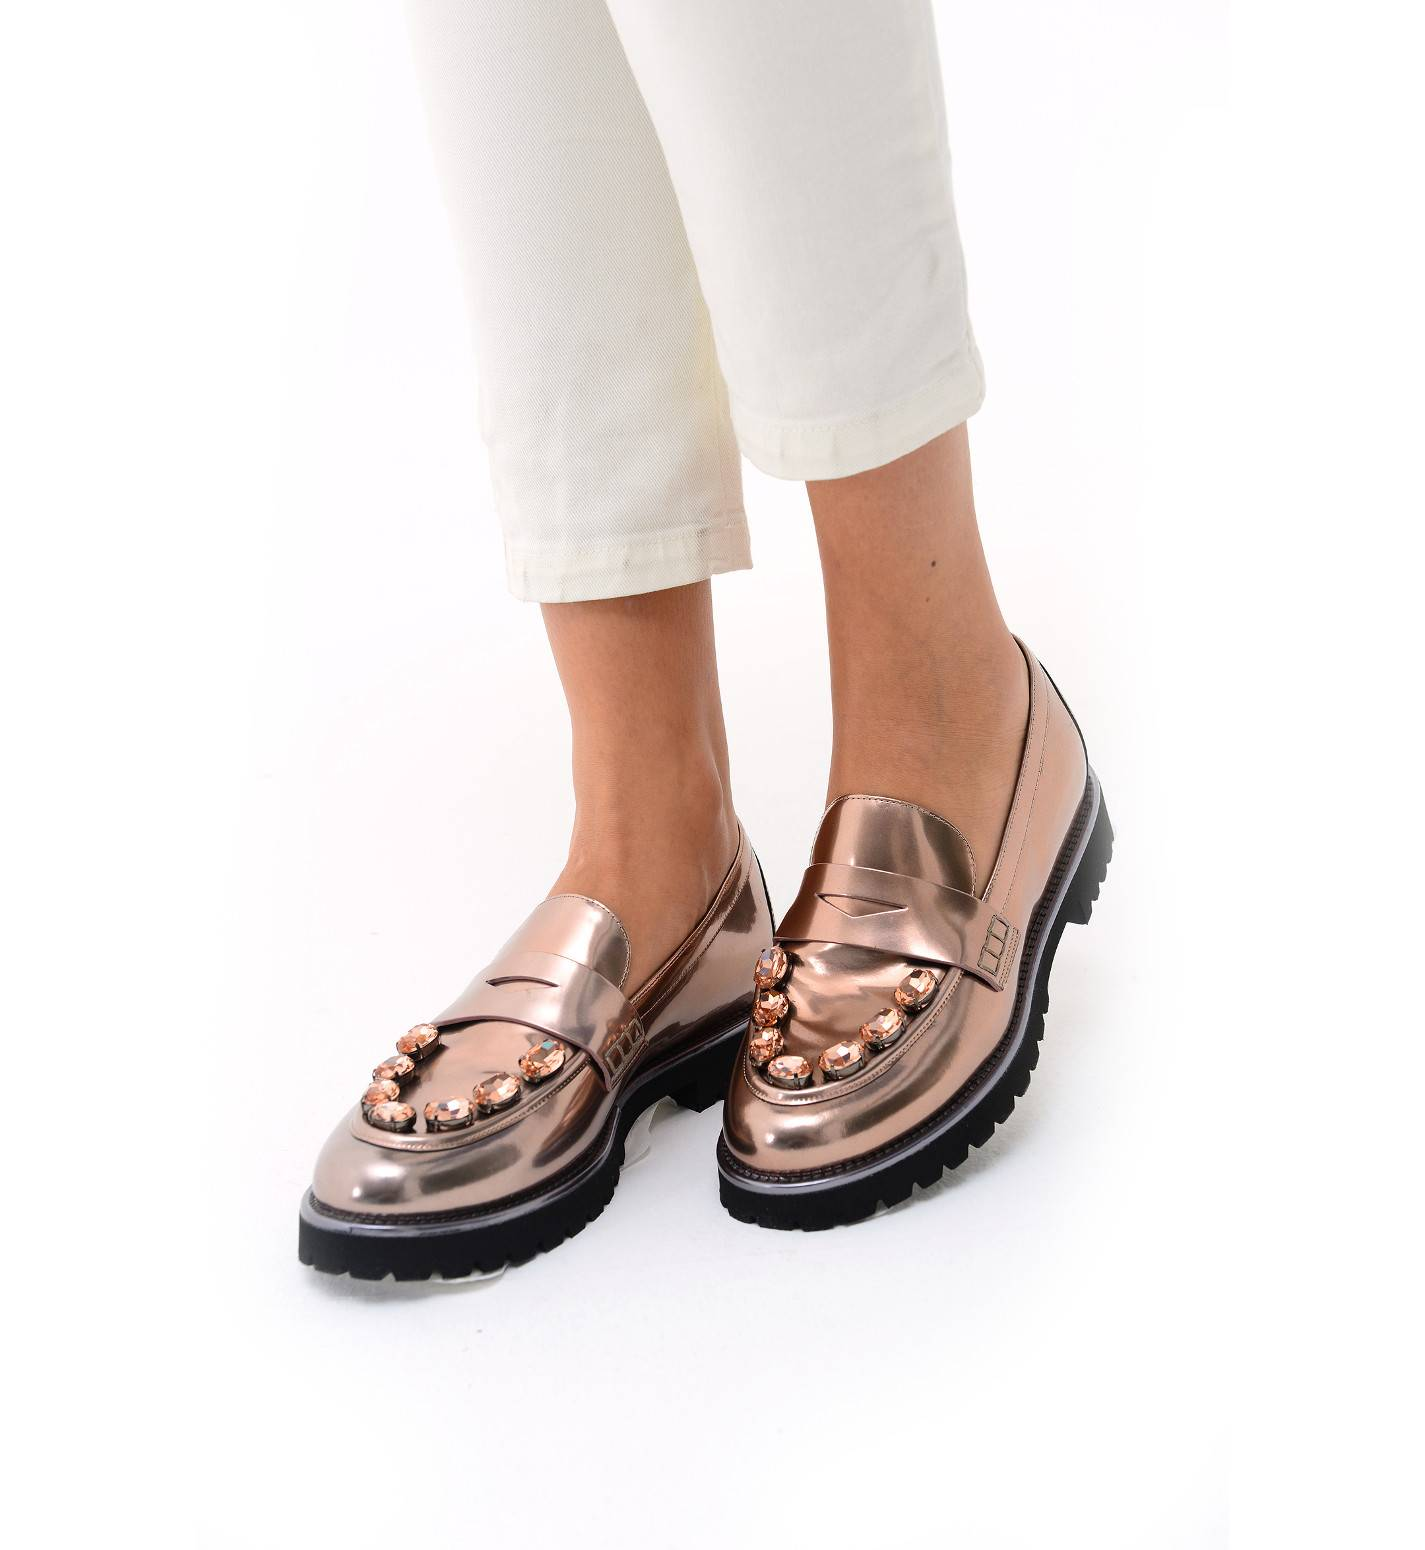 1893f16bcde Lemat loafers cardinal fashion boutique jpg 1425x1550 Rose gold loafers